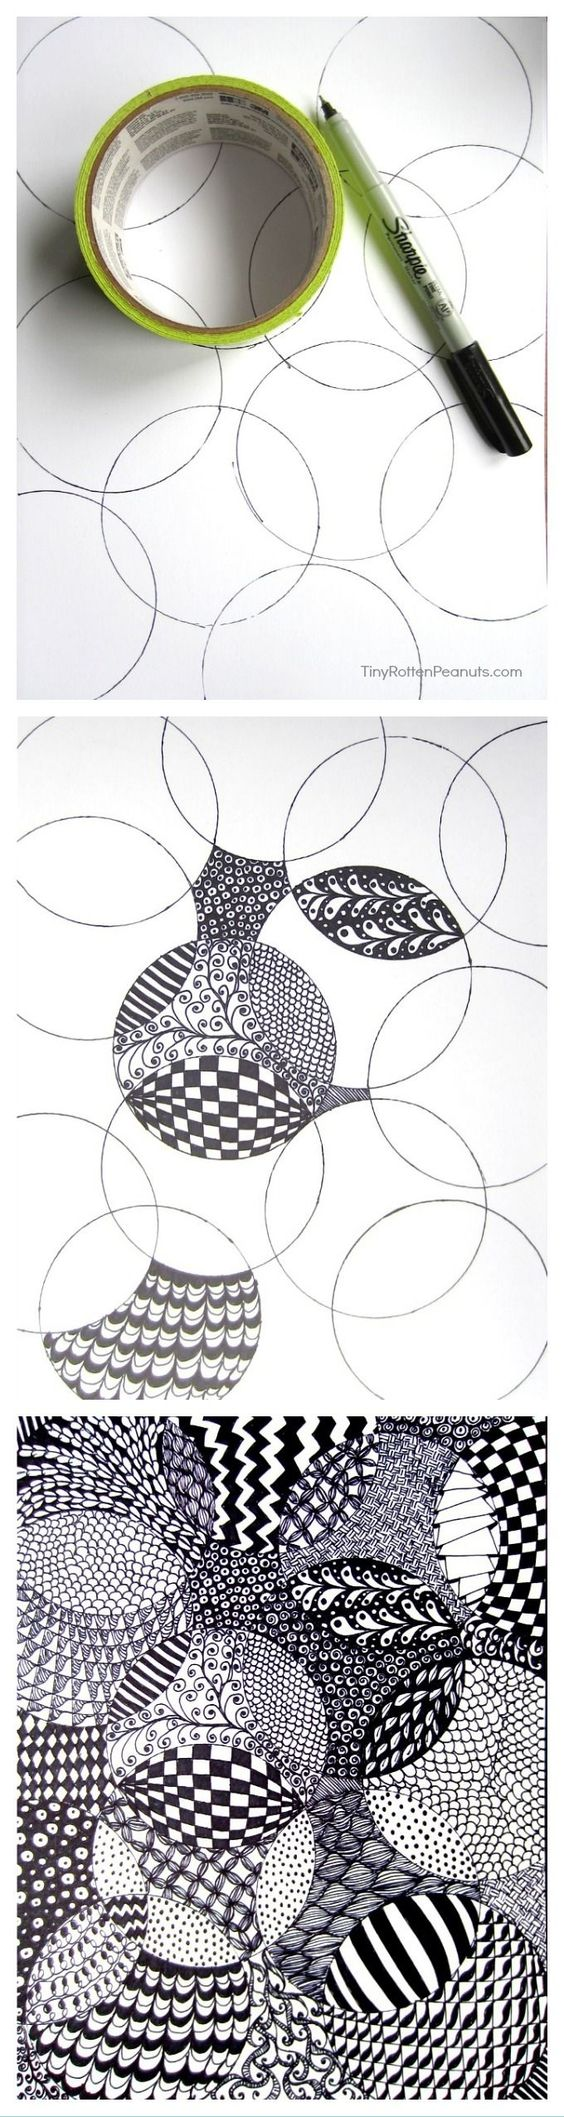 Schule kunstunterricht pinterest zentangle und kunst for Pinterest kunst